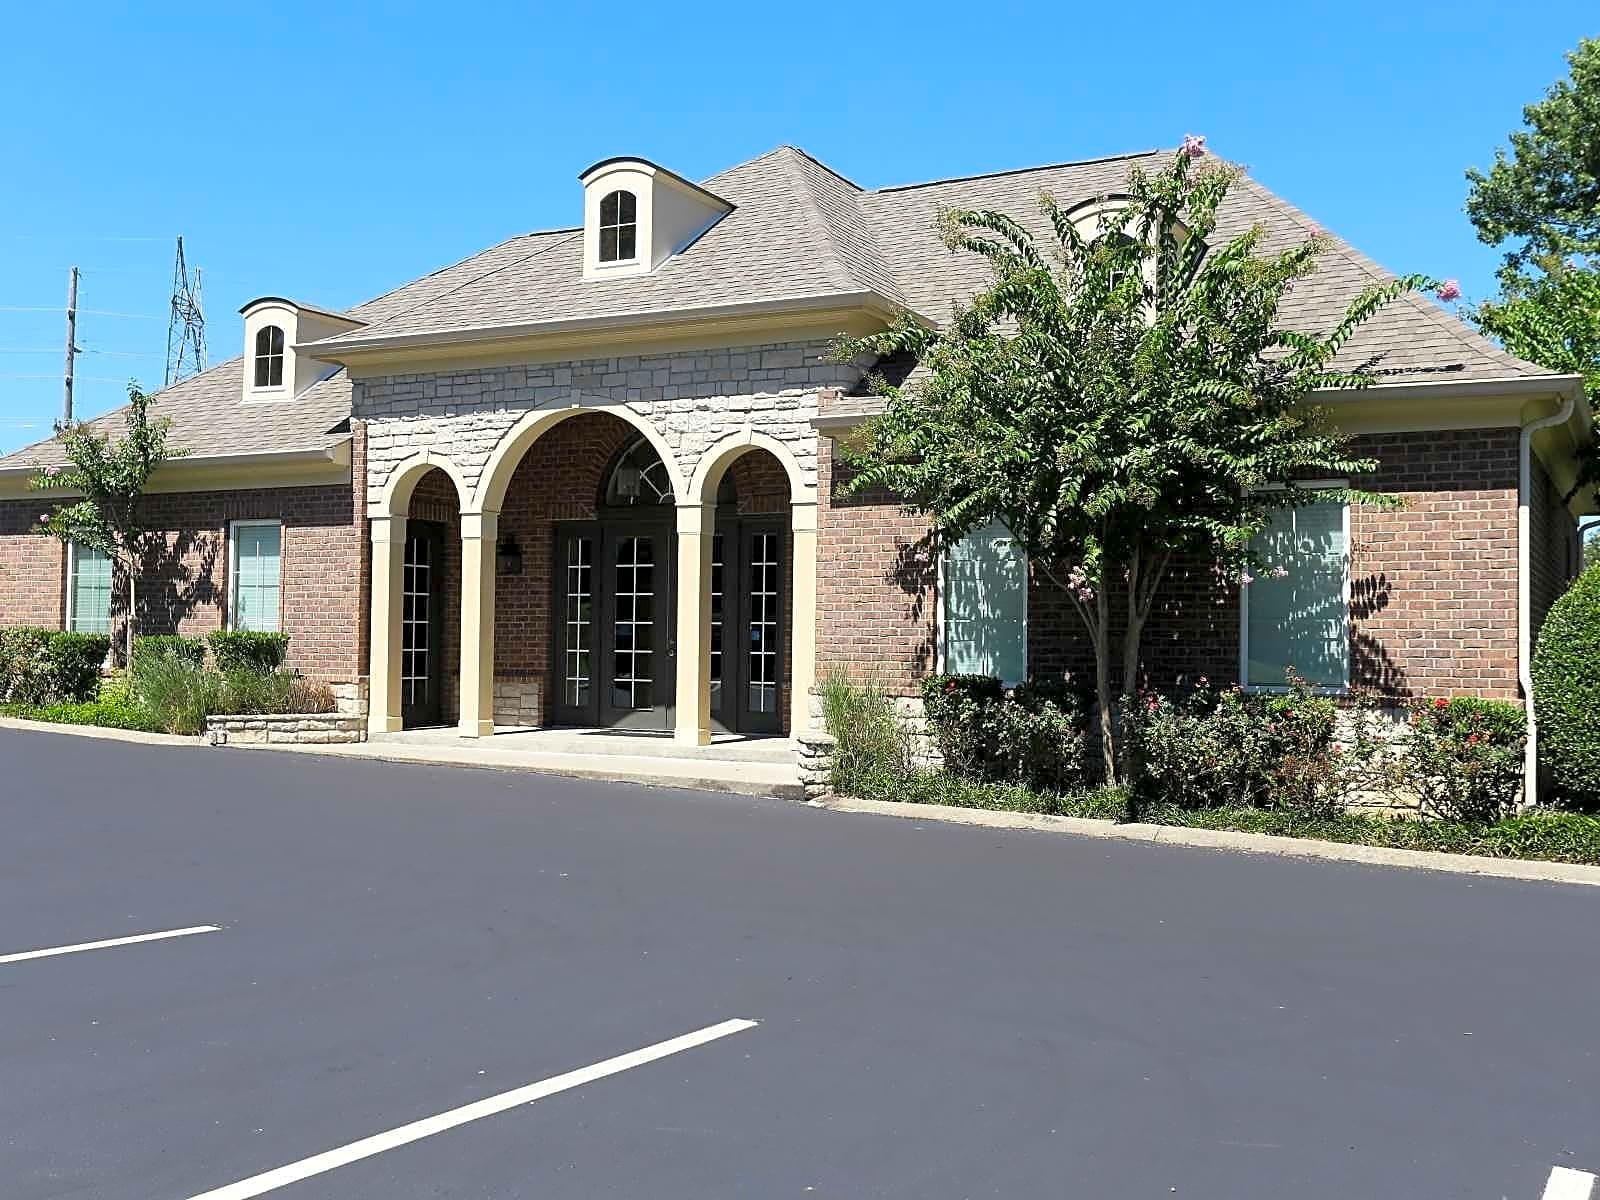 Brentwood Station Apartments  Nashville, Tn 37211. Wellness Recovery Action Plan Pdf. Homeland Security Issues Desayunos Para Ninos. Period Migraines Treatment Museum Long Beach. Up And Over Garage Door Repairs. Sell Your Financed Car Newsletter Real Estate. Us Airways Mileage Program Wps Button Xfinity. Insurance For Manufactured Homes. Car Insurance Money Saving Expert